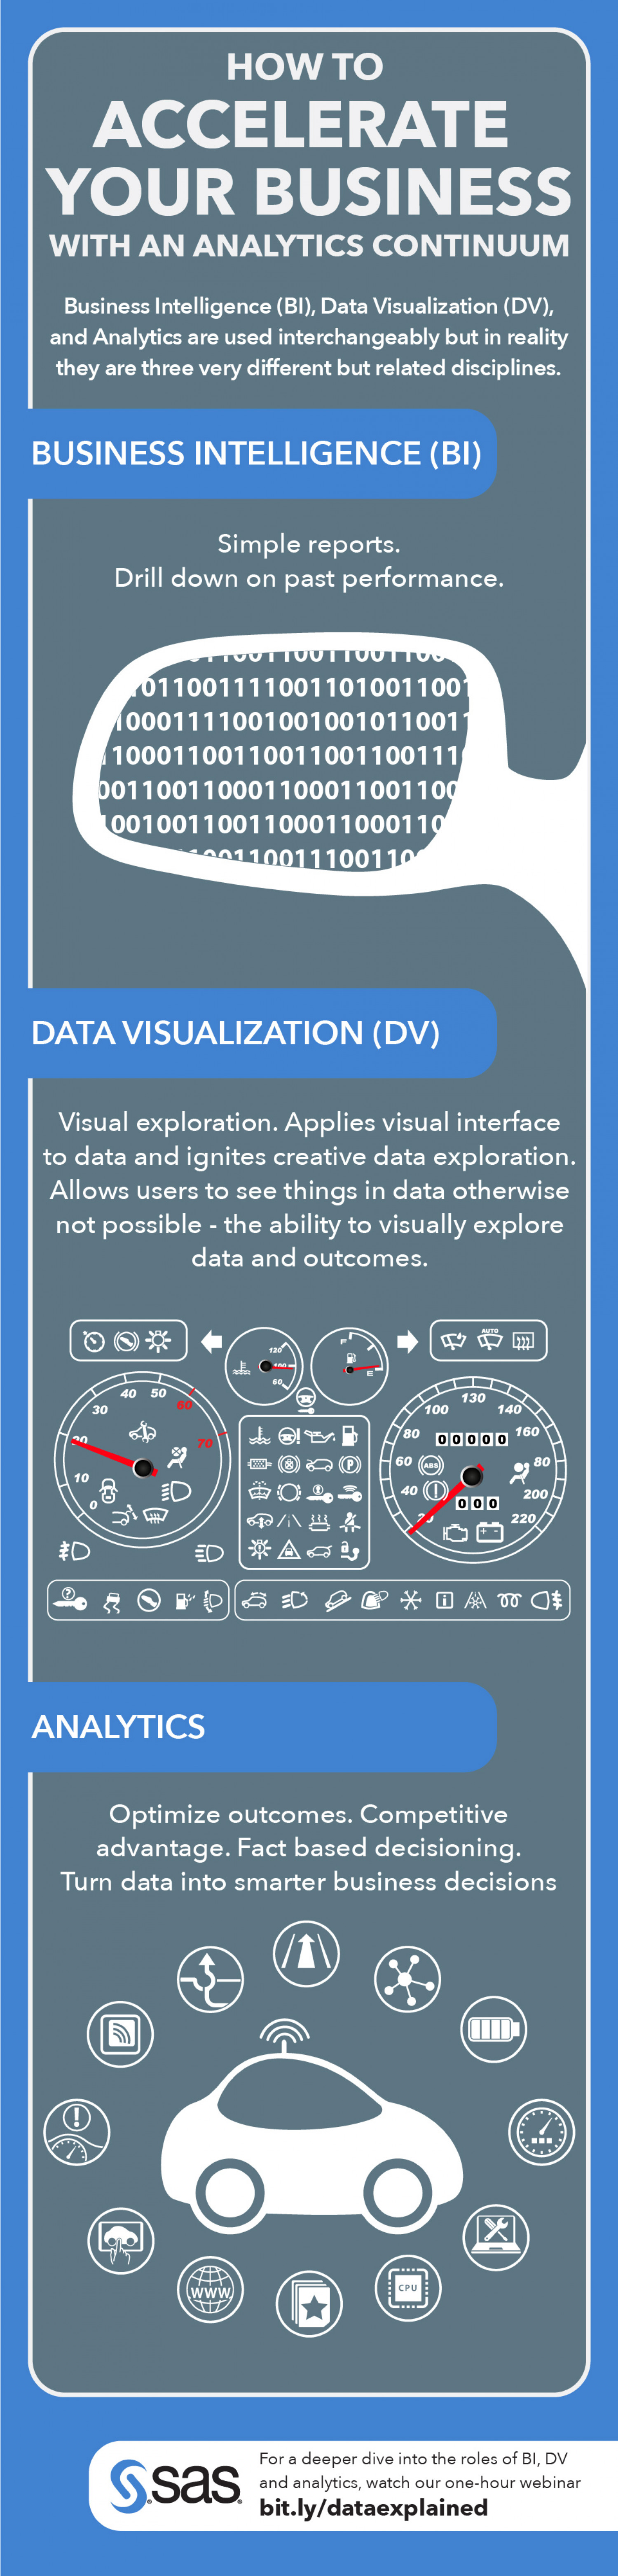 How To Accelerate Your Business With an Analytics Continuum Infographic